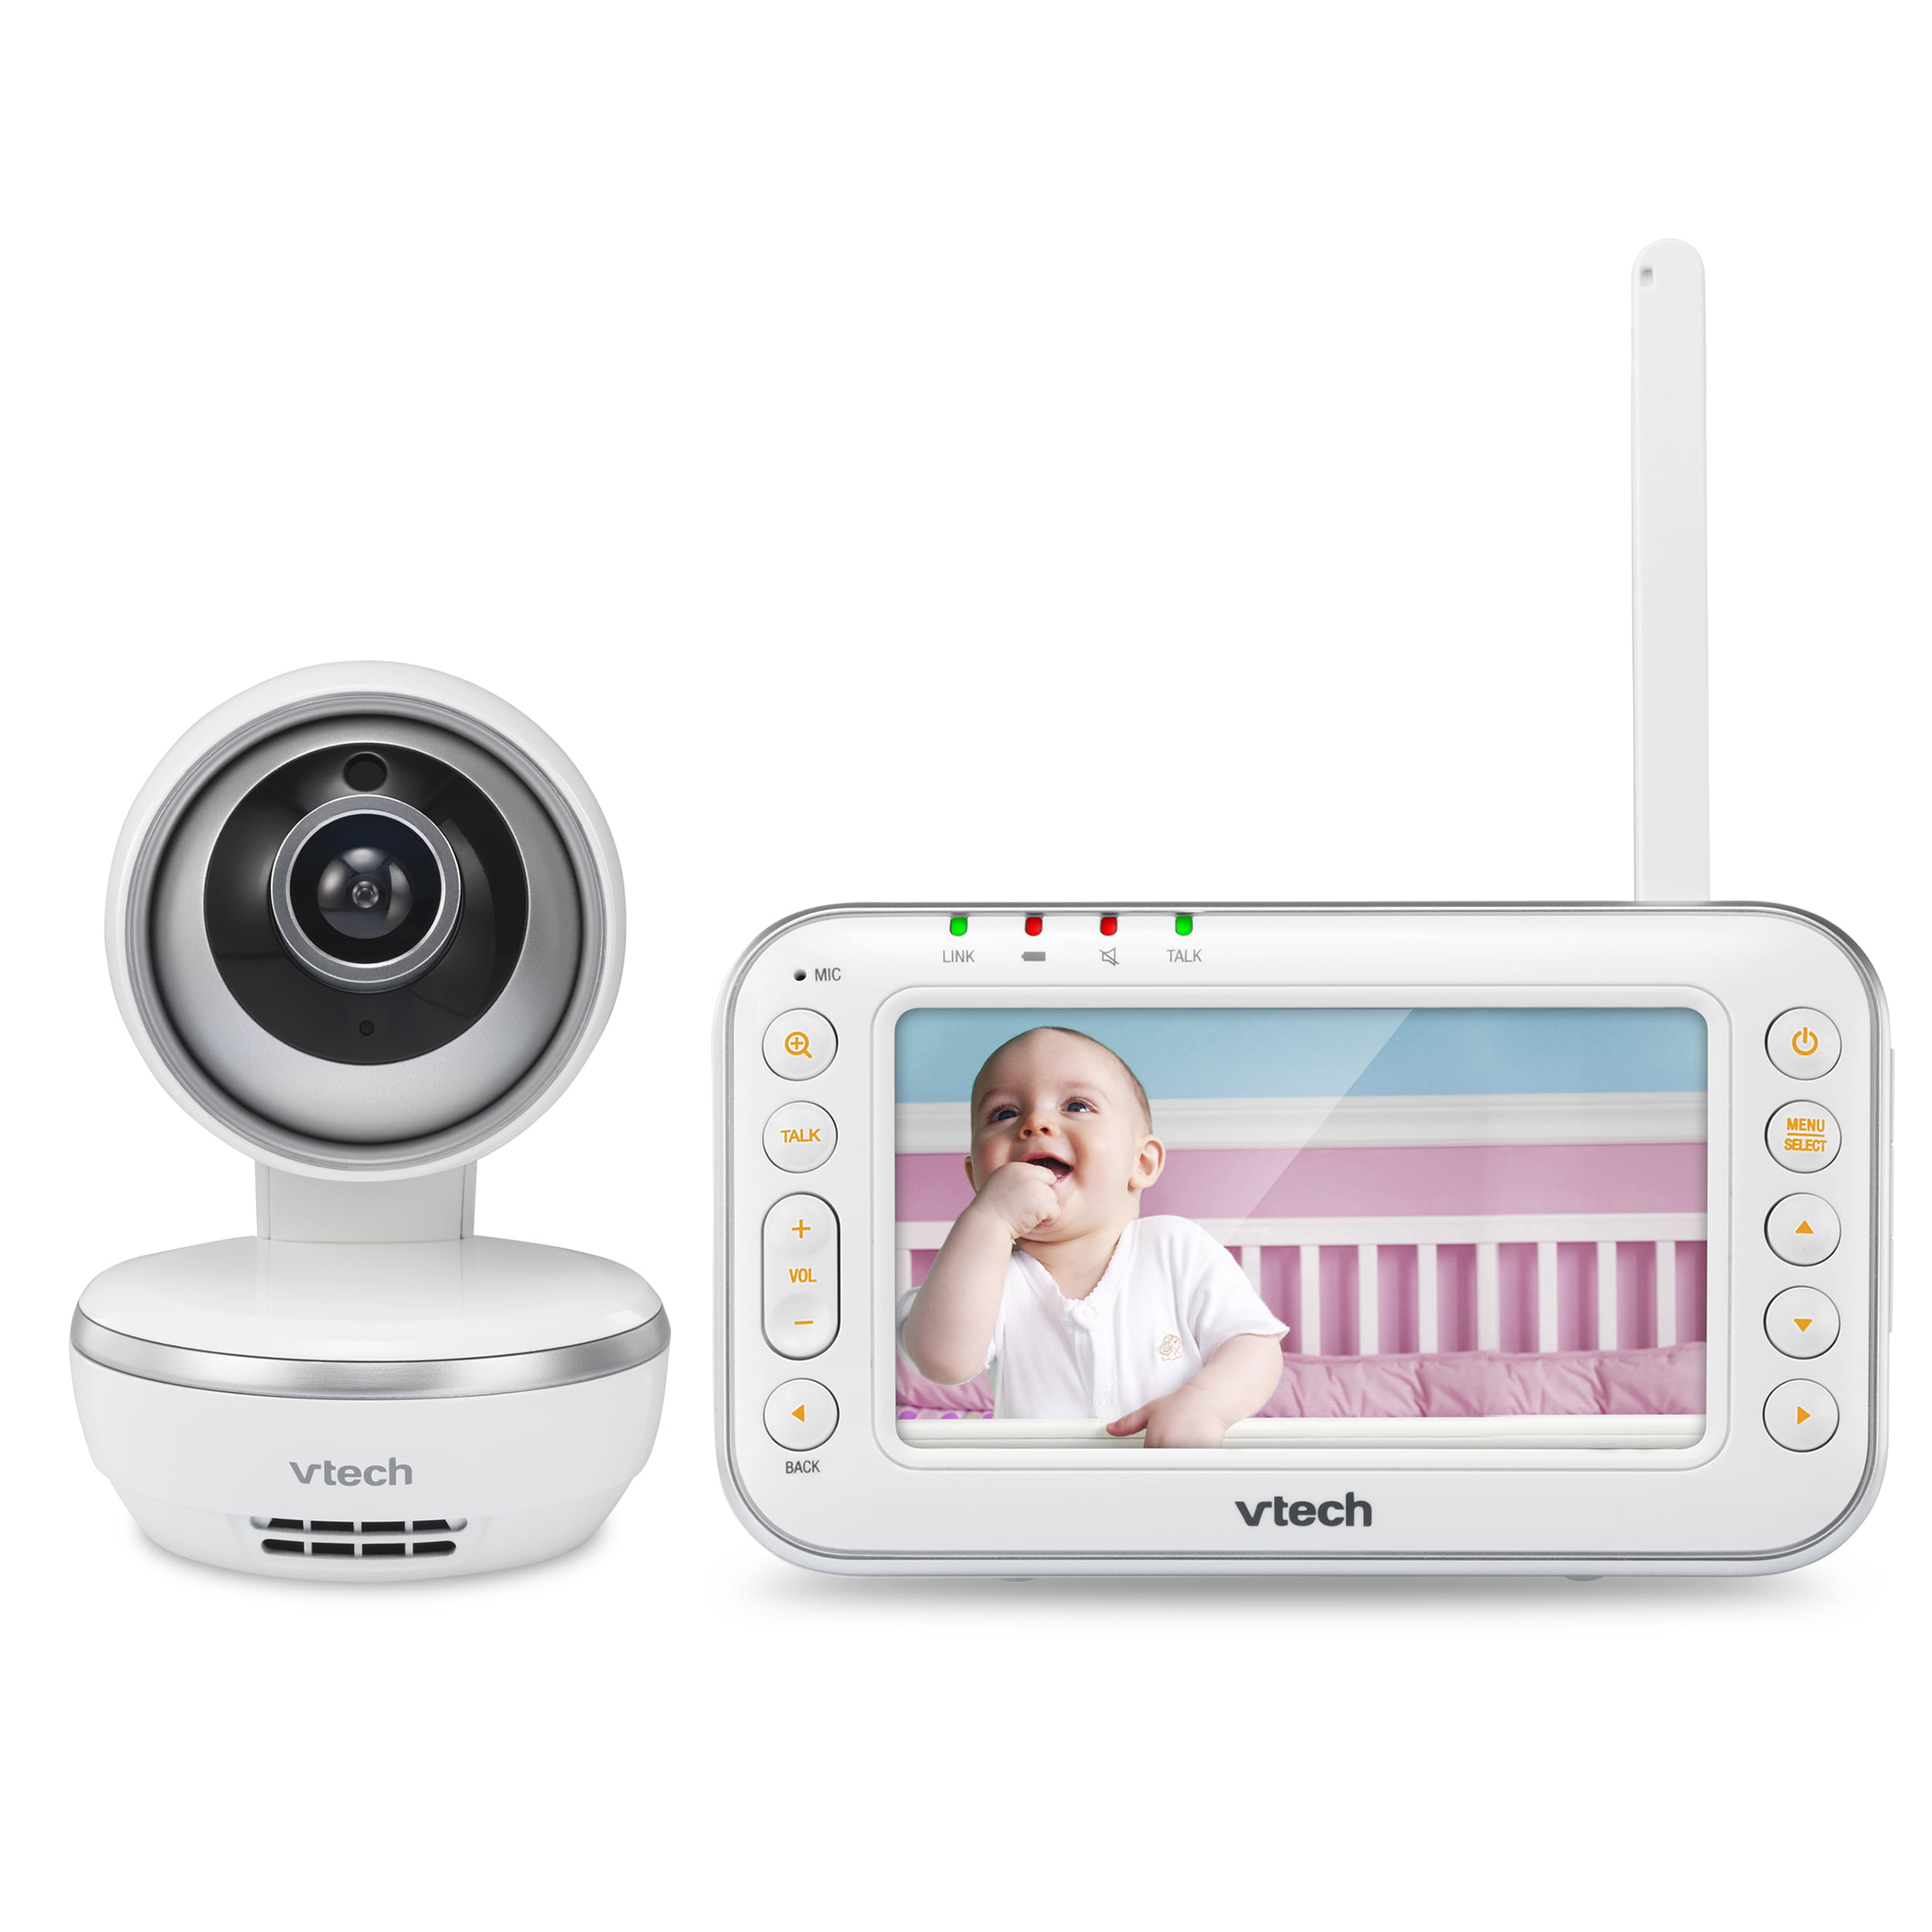 VTech VM4261 4.3� Digital Video Baby Monitor with Pan & Tilt Camera, Wide-Angle Lens and Standard Lens, White by VTech